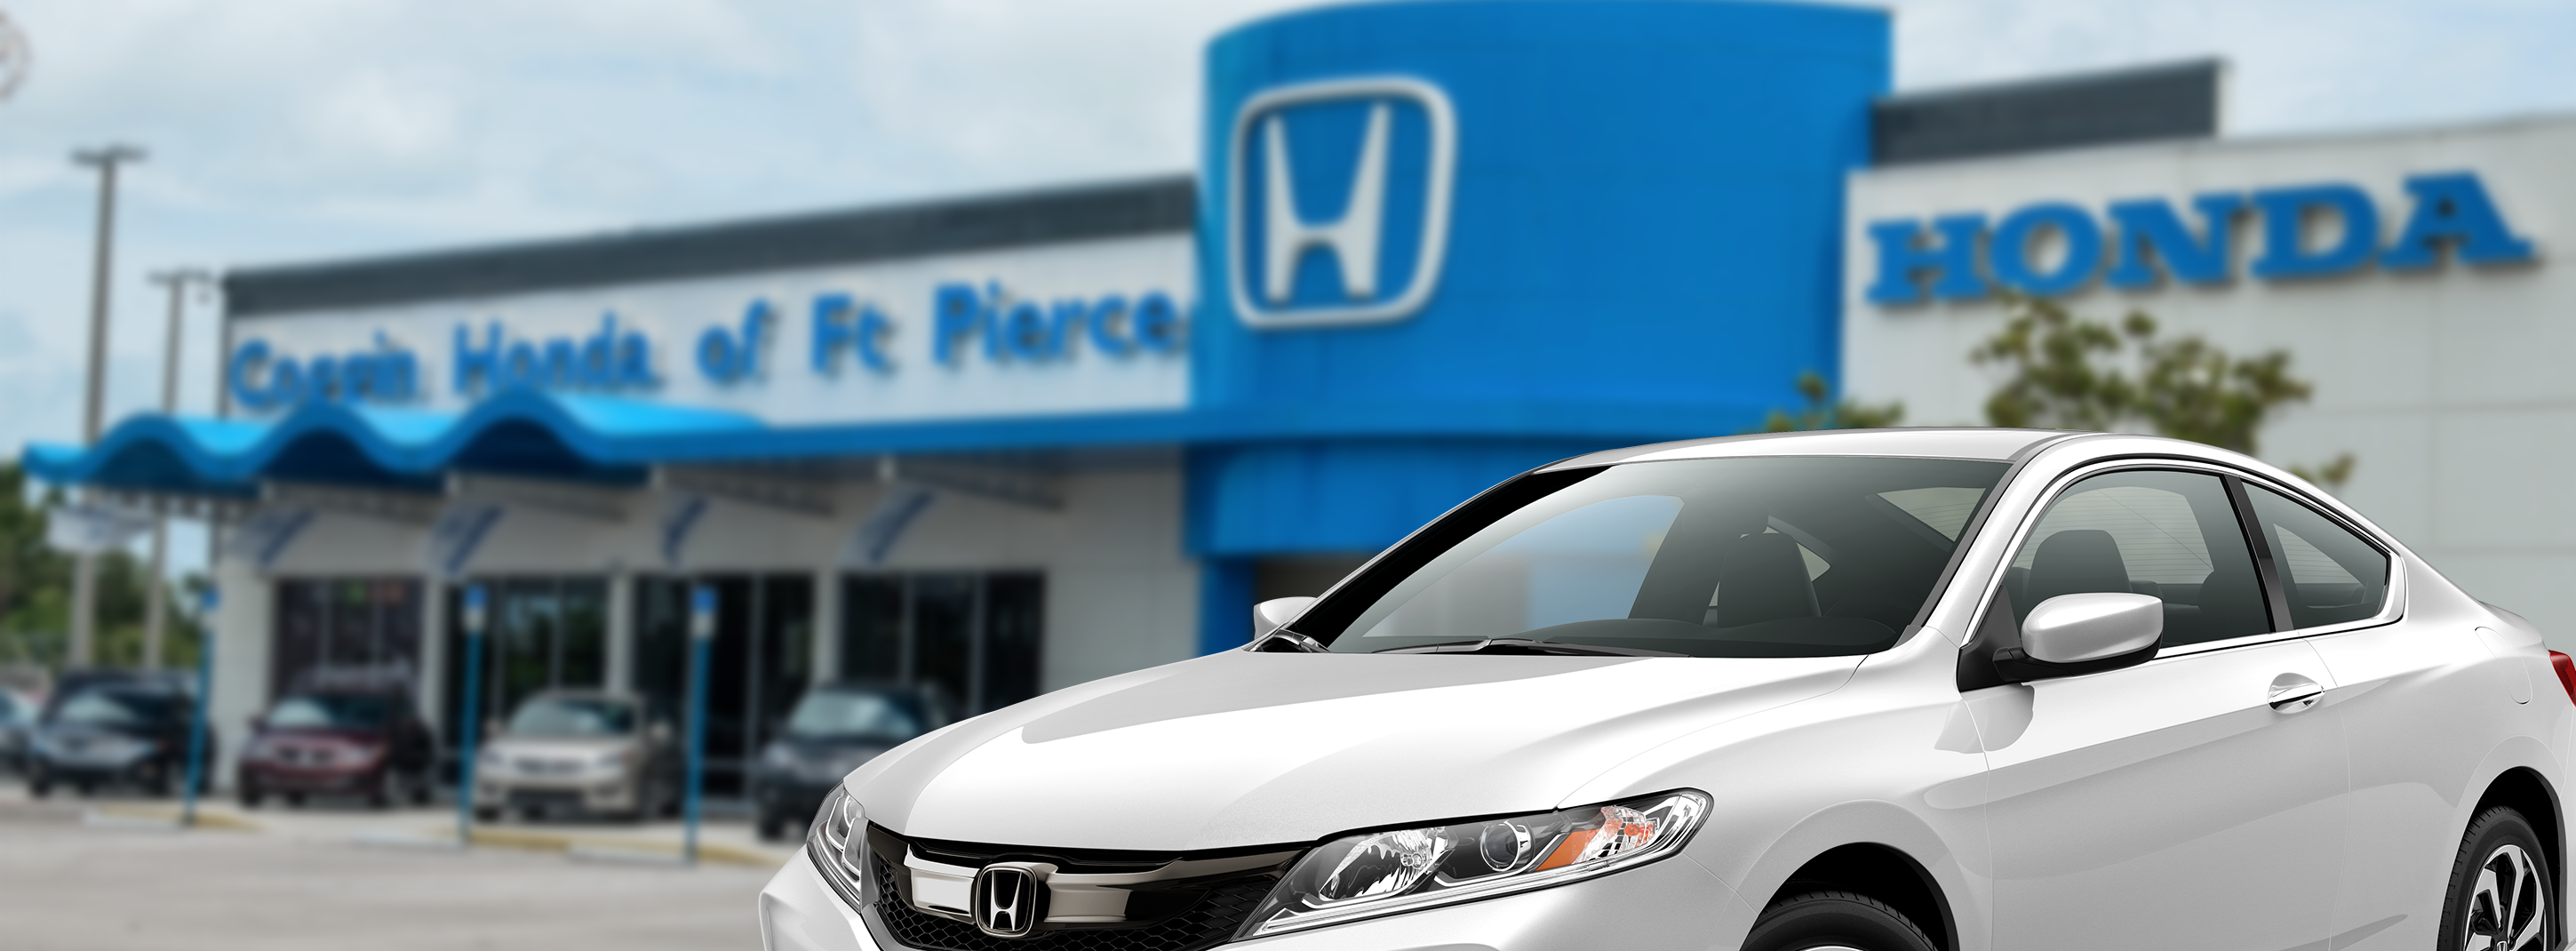 sam island pilot offers lease honda deals december code and coupon down long zumiez kamus